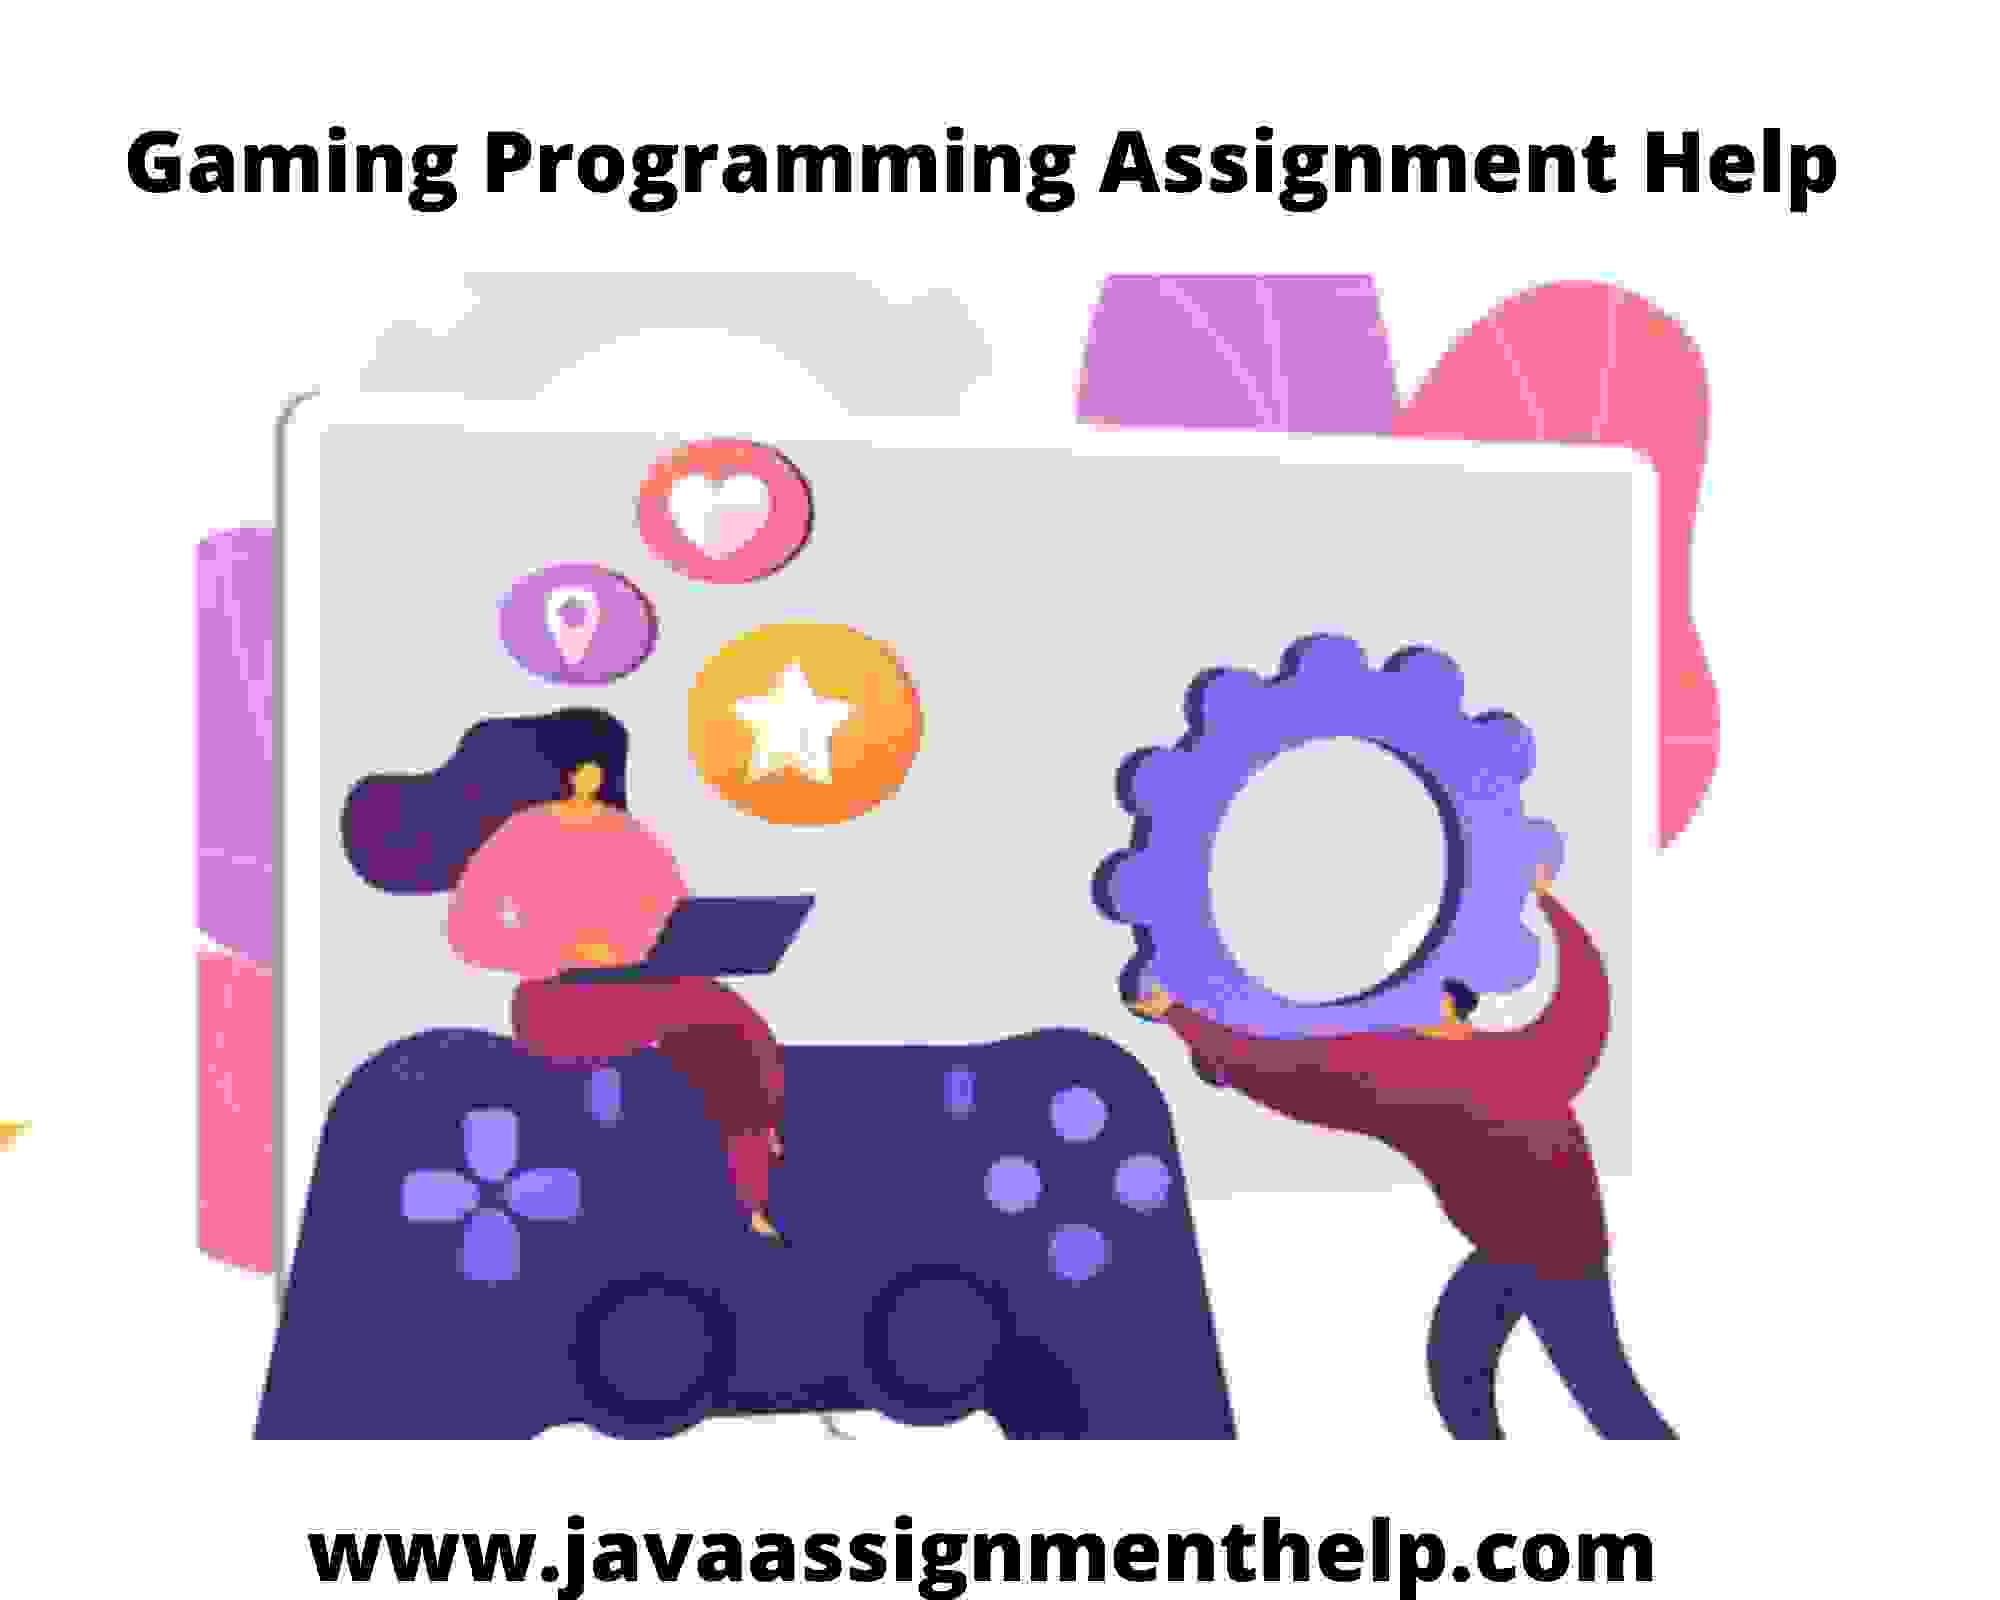 Gaming Programming Assignment Help